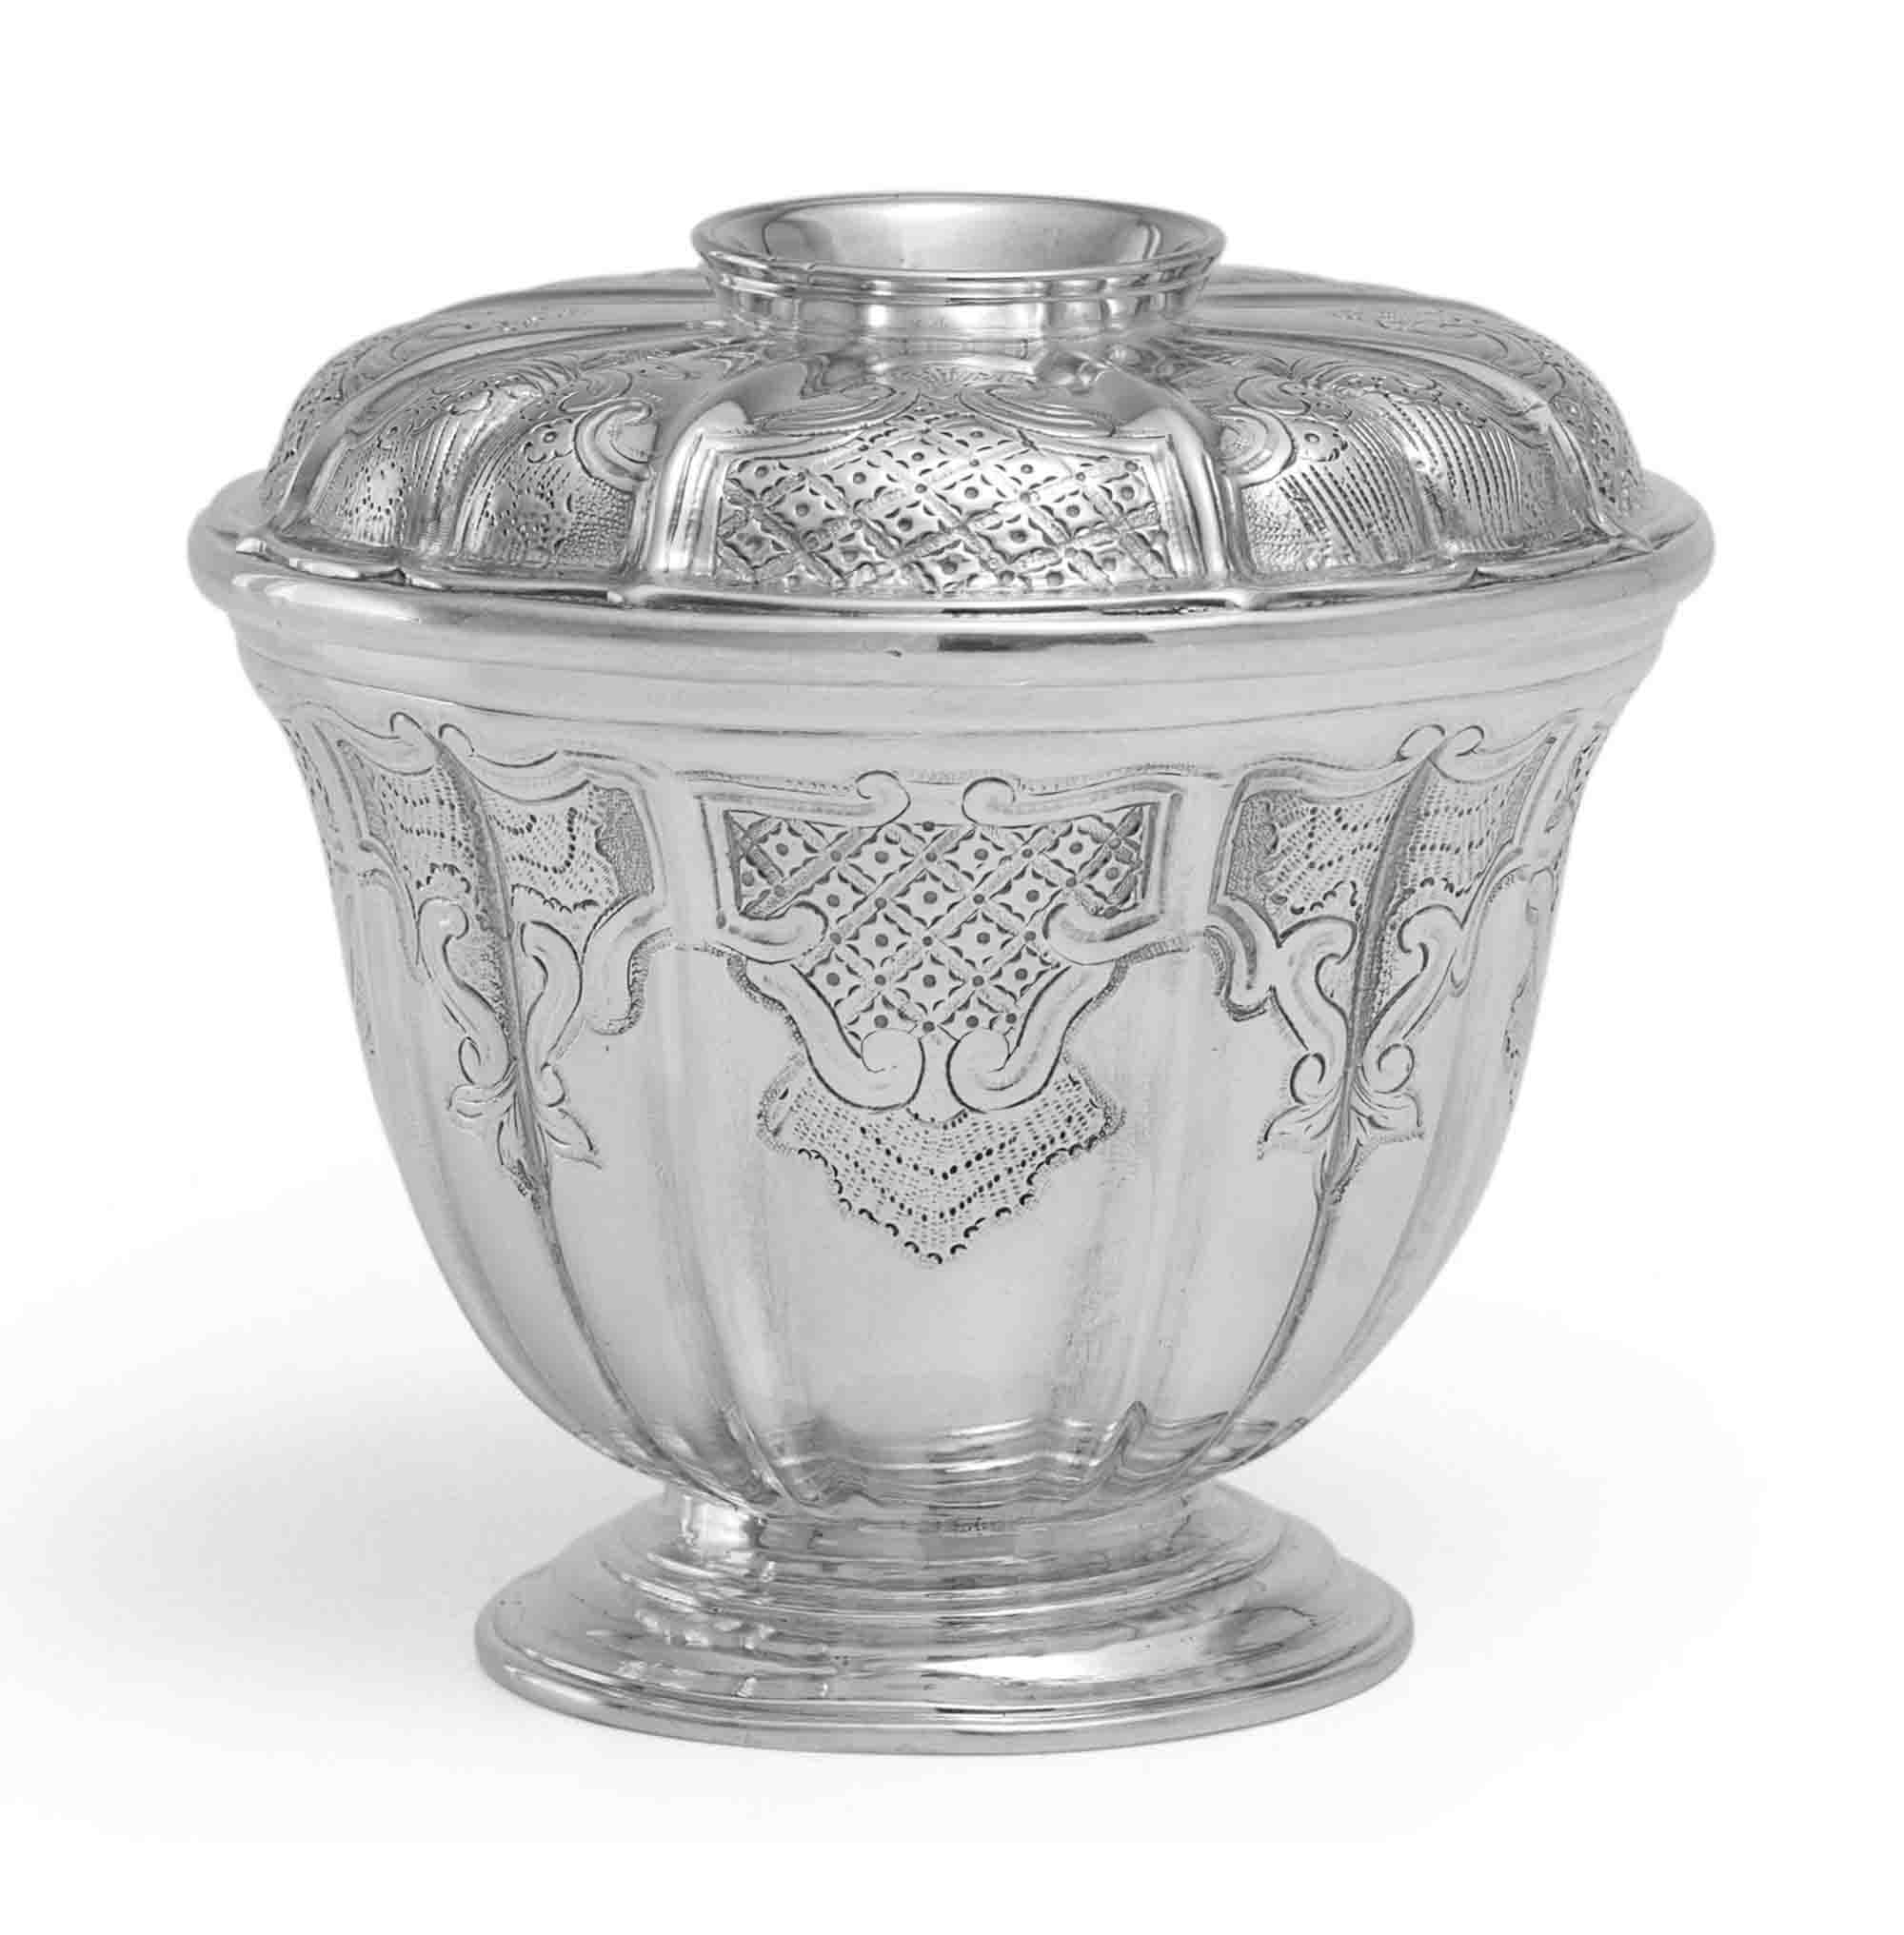 A GEORGE II SILVER SUGAR BOWL AND COVER